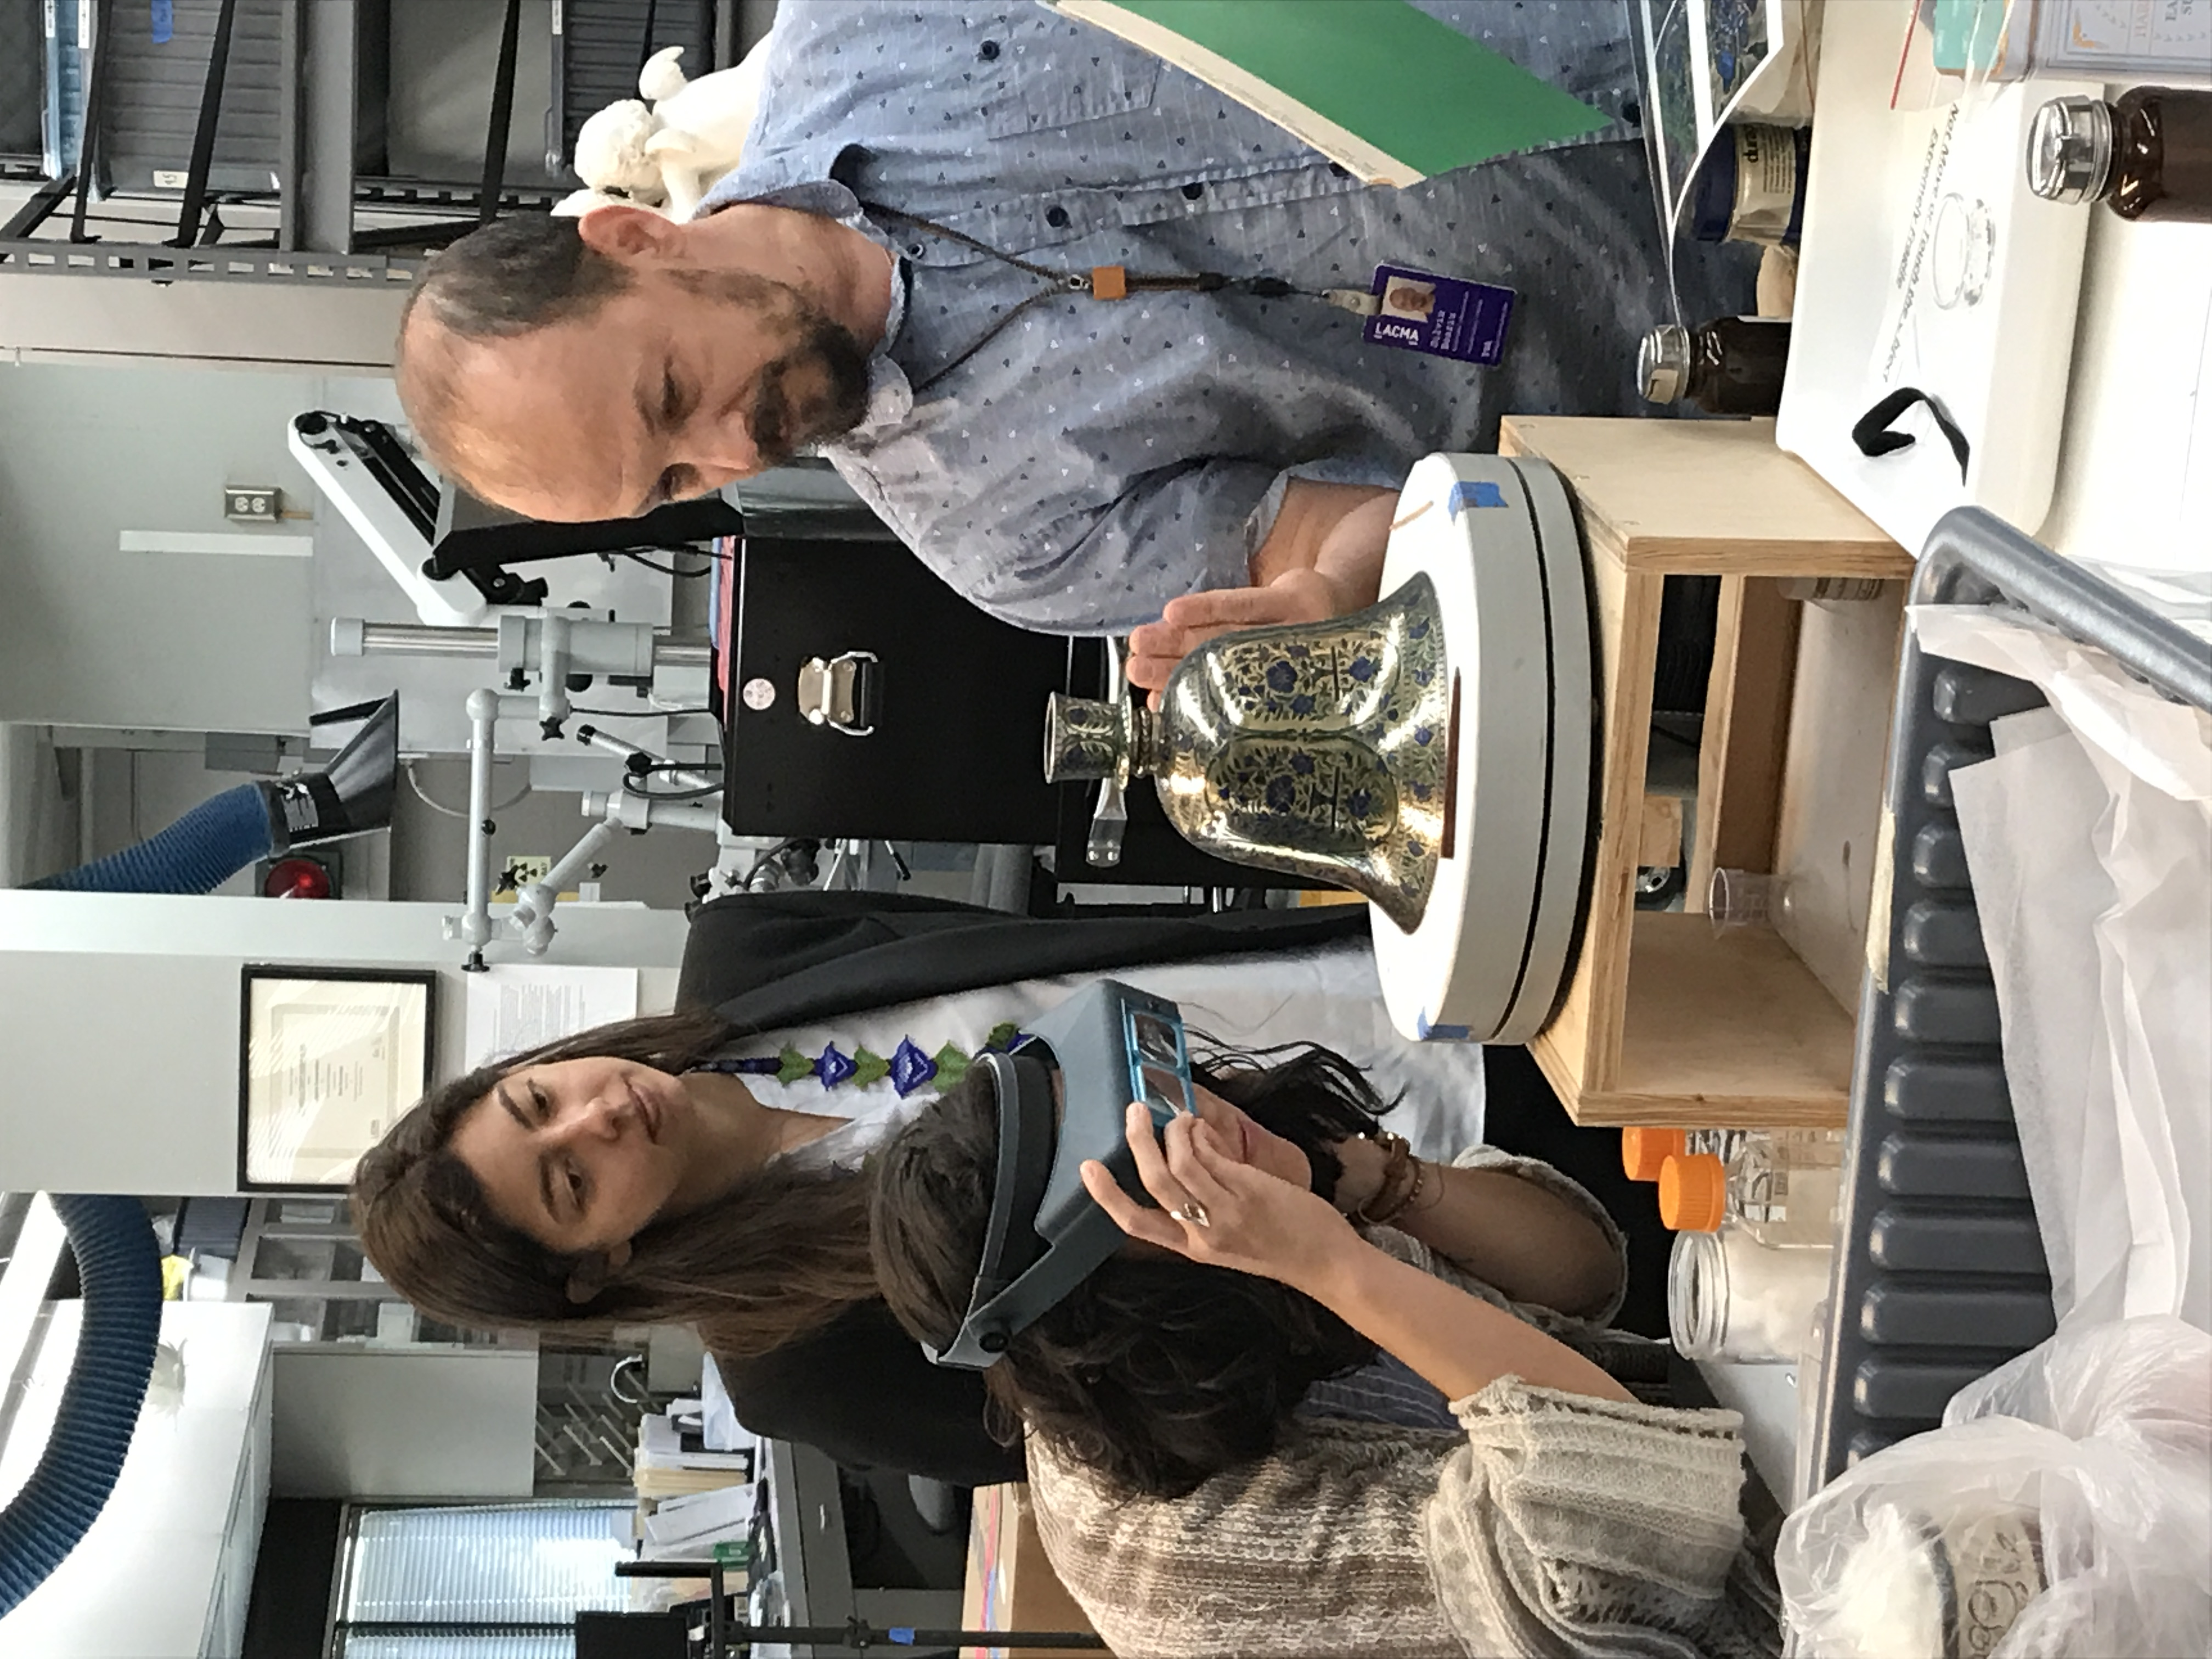 Aurora (center) in LACMA's Conservation Lab, with LACMA-ASU Fellow Ariana Enriquez (left) and LACMA Objects Conservator Silviu Boariu (right), photo courtesy of Hilary Walter